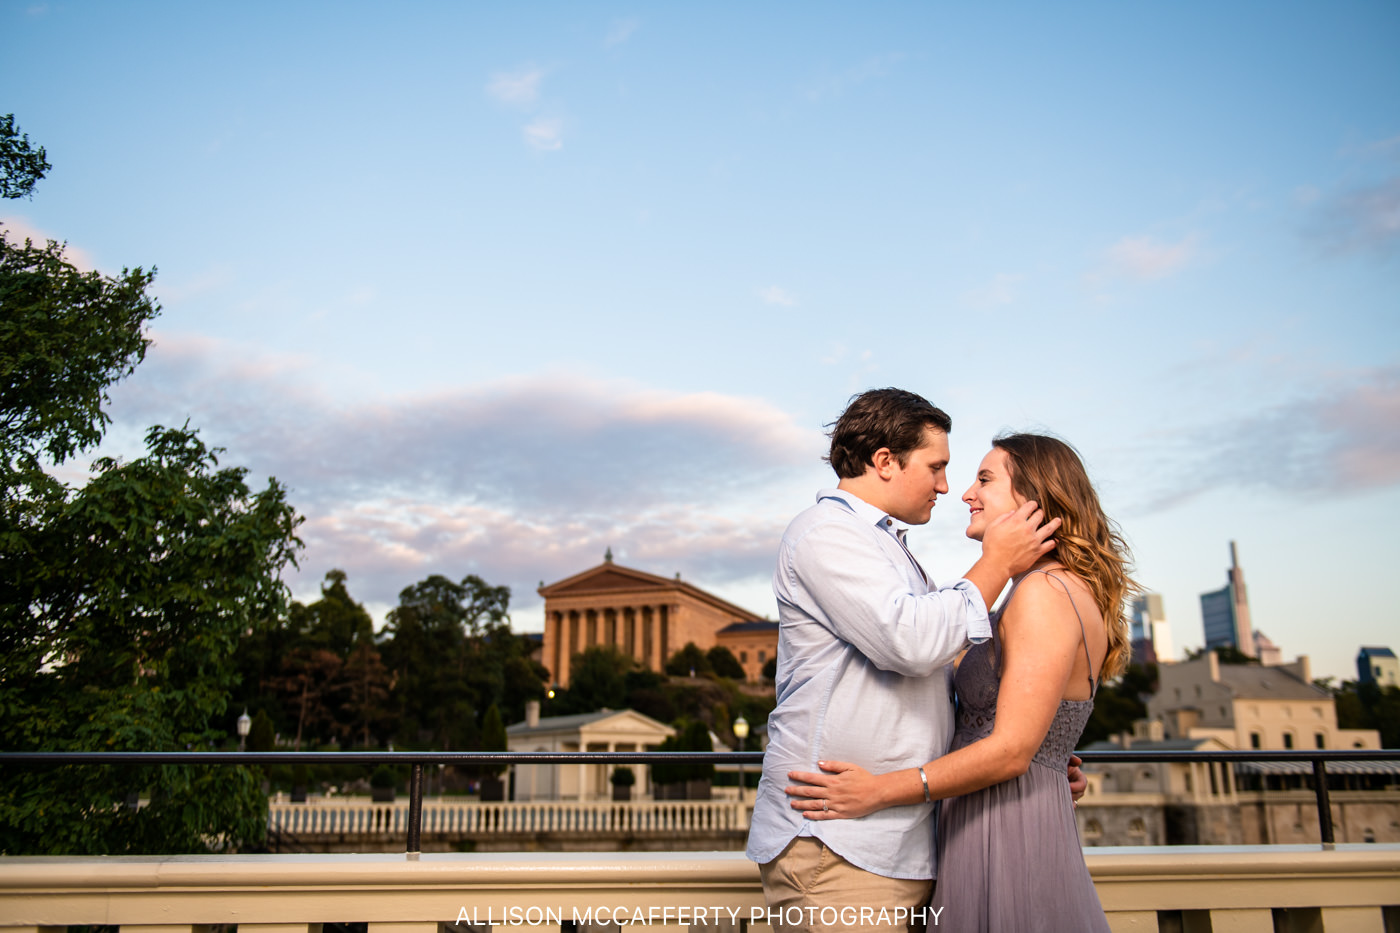 Where to Do Engagement Photos in Philadelphia